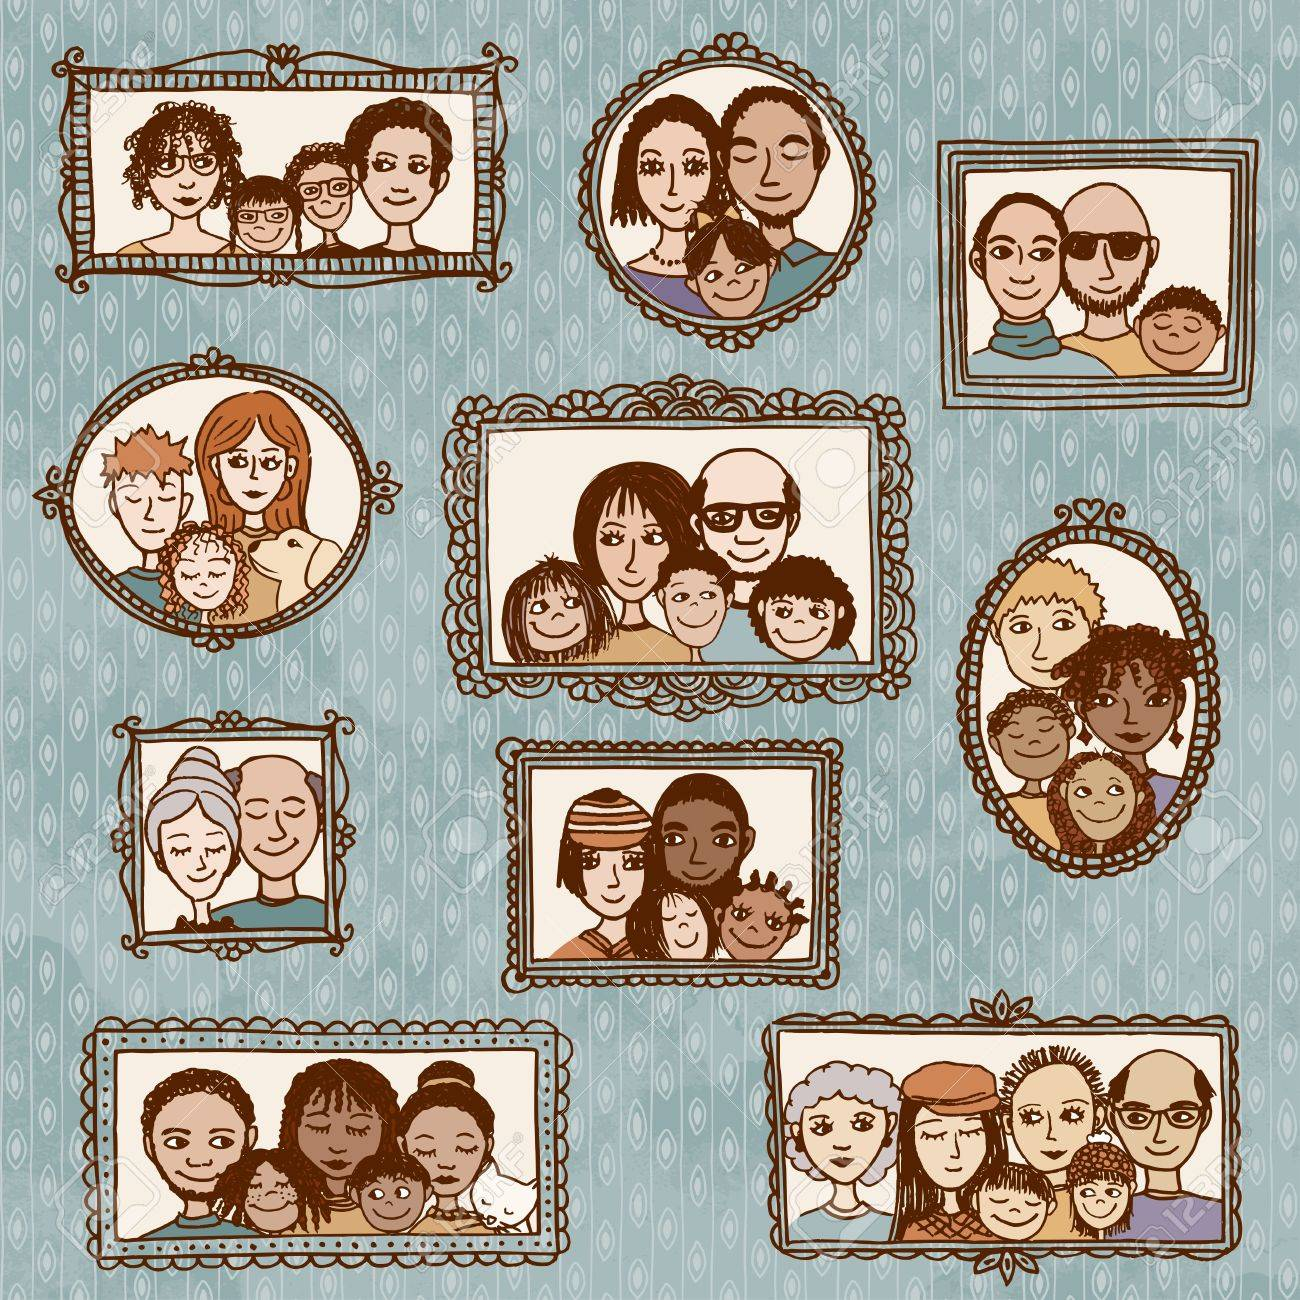 Cute hand drawn picture frames with family portraits - 52586055